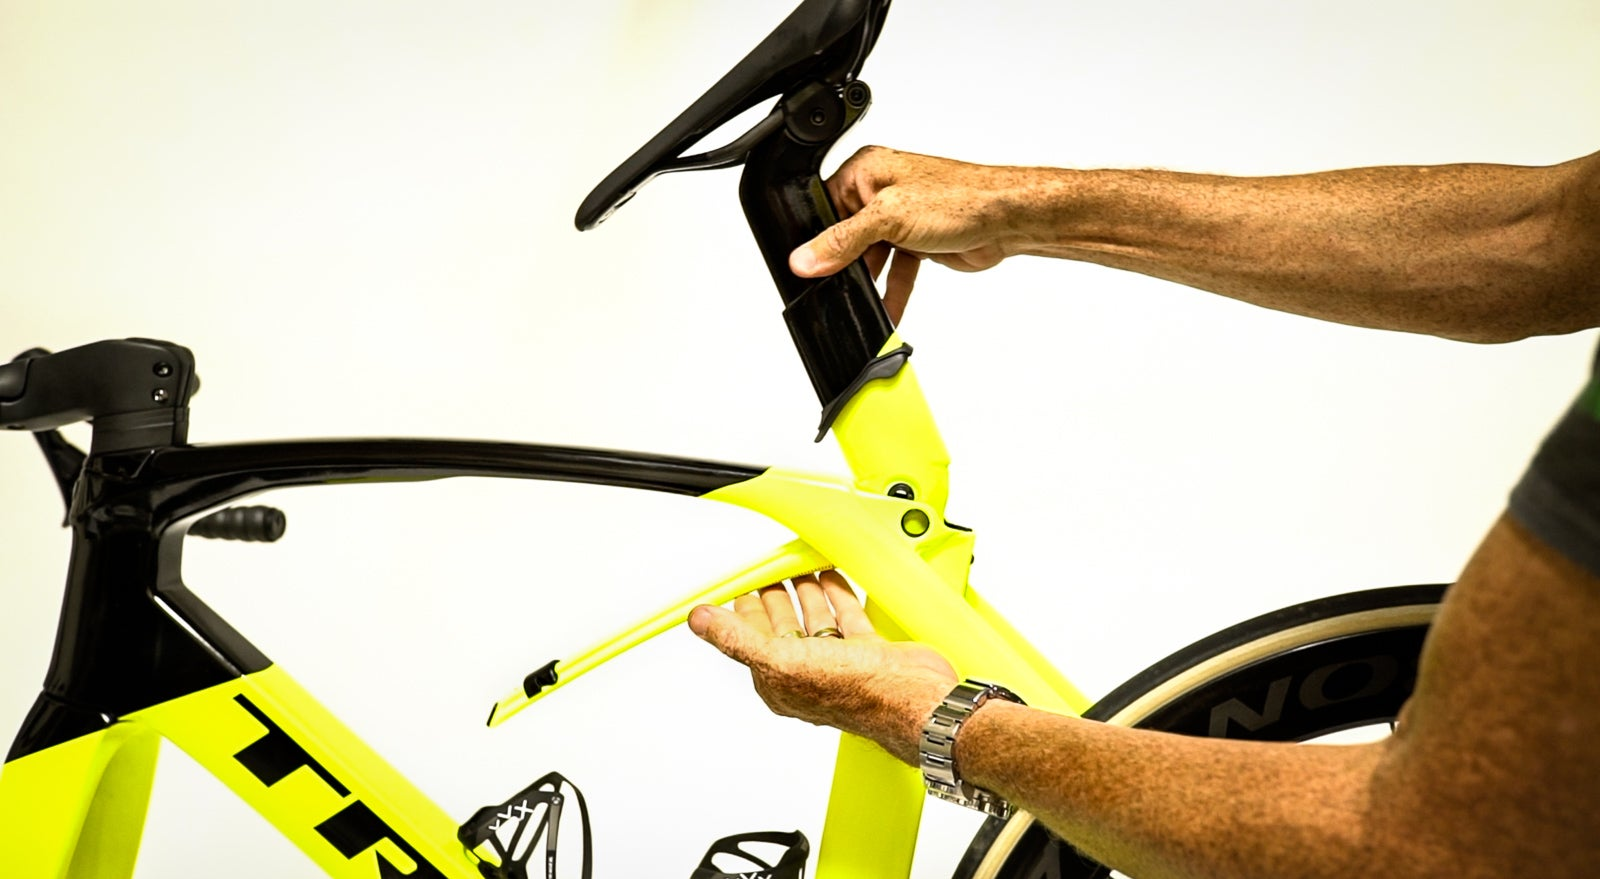 Exploded: The New Trek Madone SLR